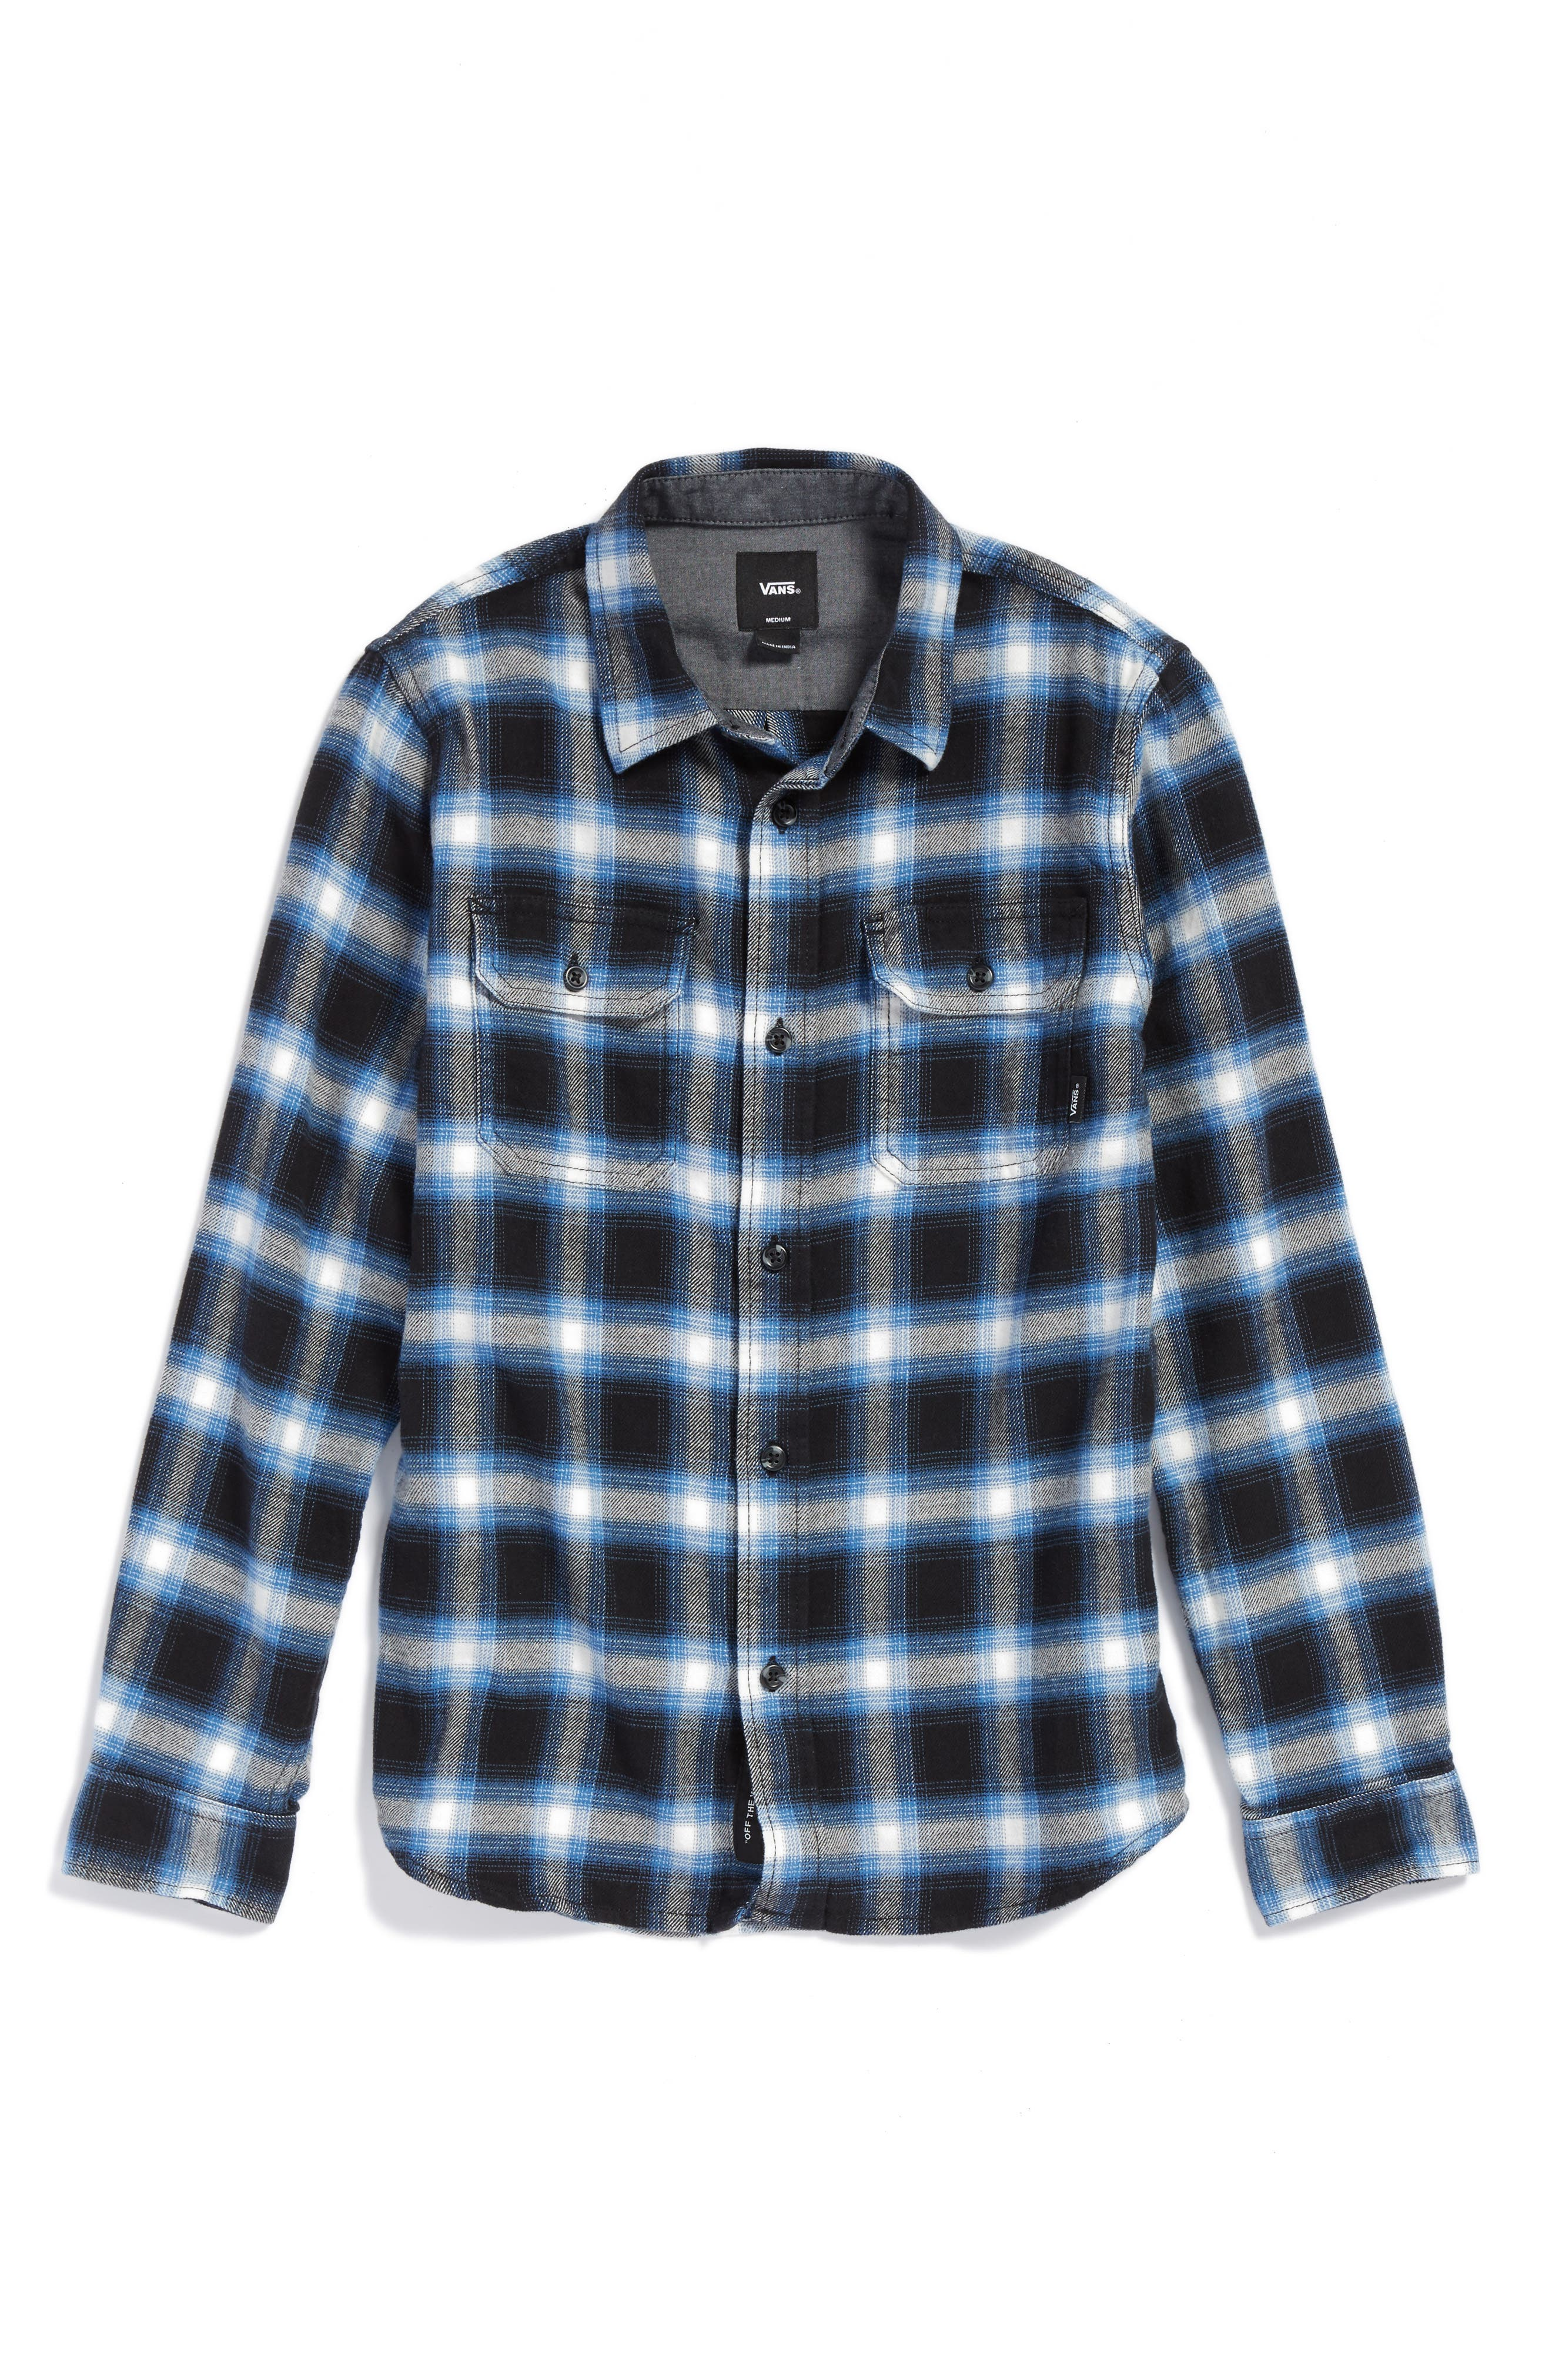 Beechwood Plaid Flannel Shirt,                         Main,                         color, 001